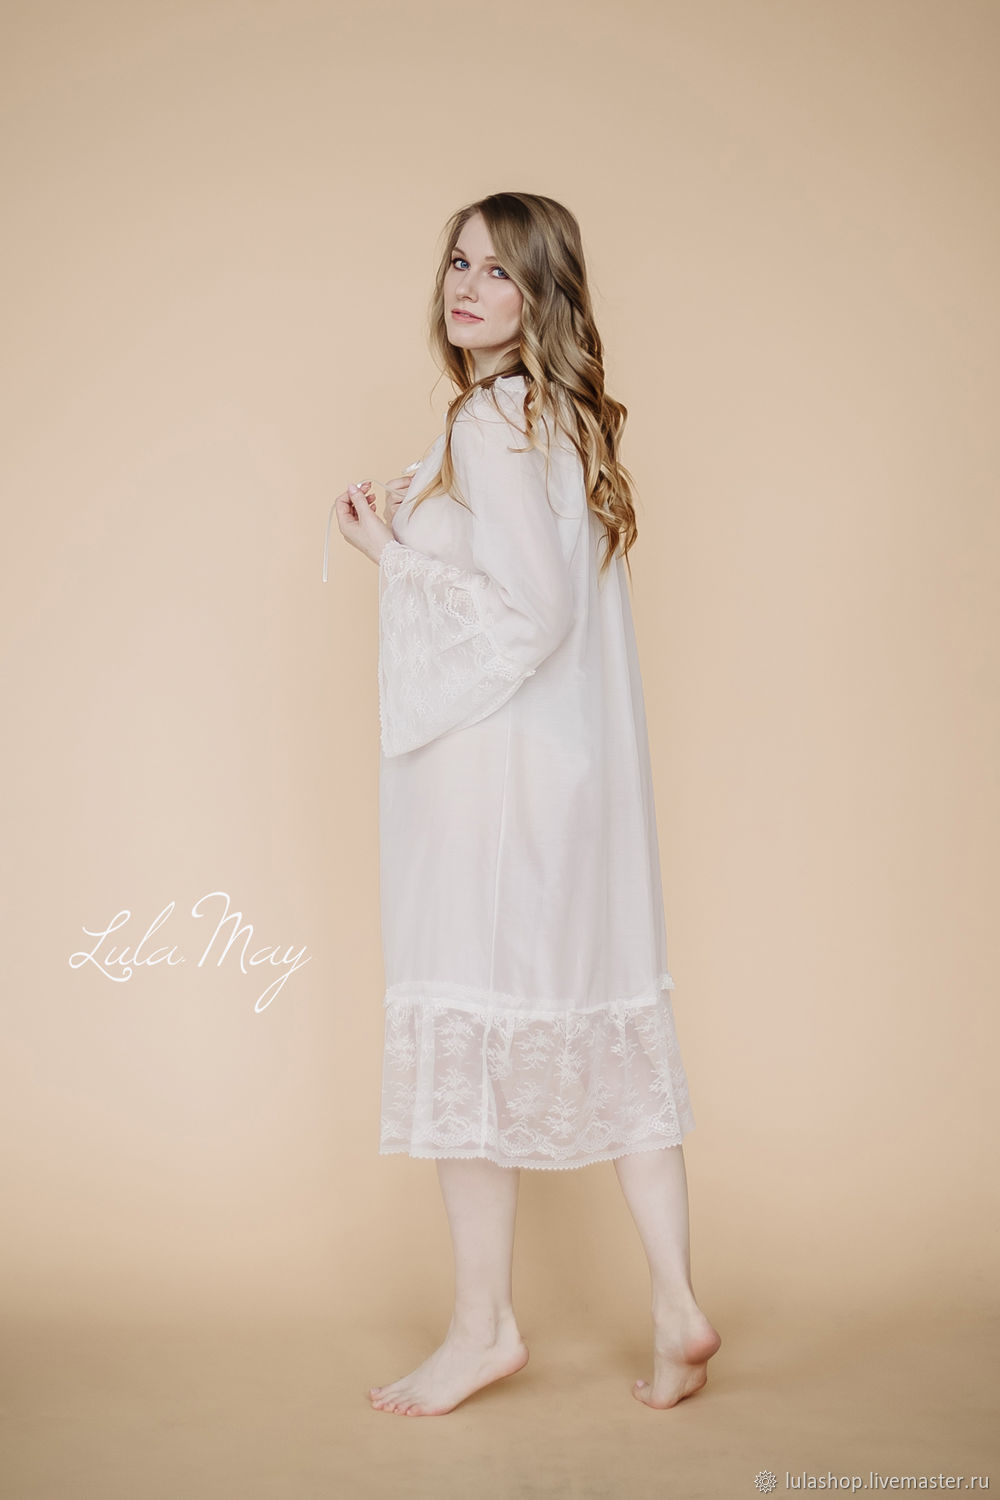 White batiste and lace feerie nightgown shop online on livemaster jpg  1000x1500 White batiste nightgown 7a5678db1